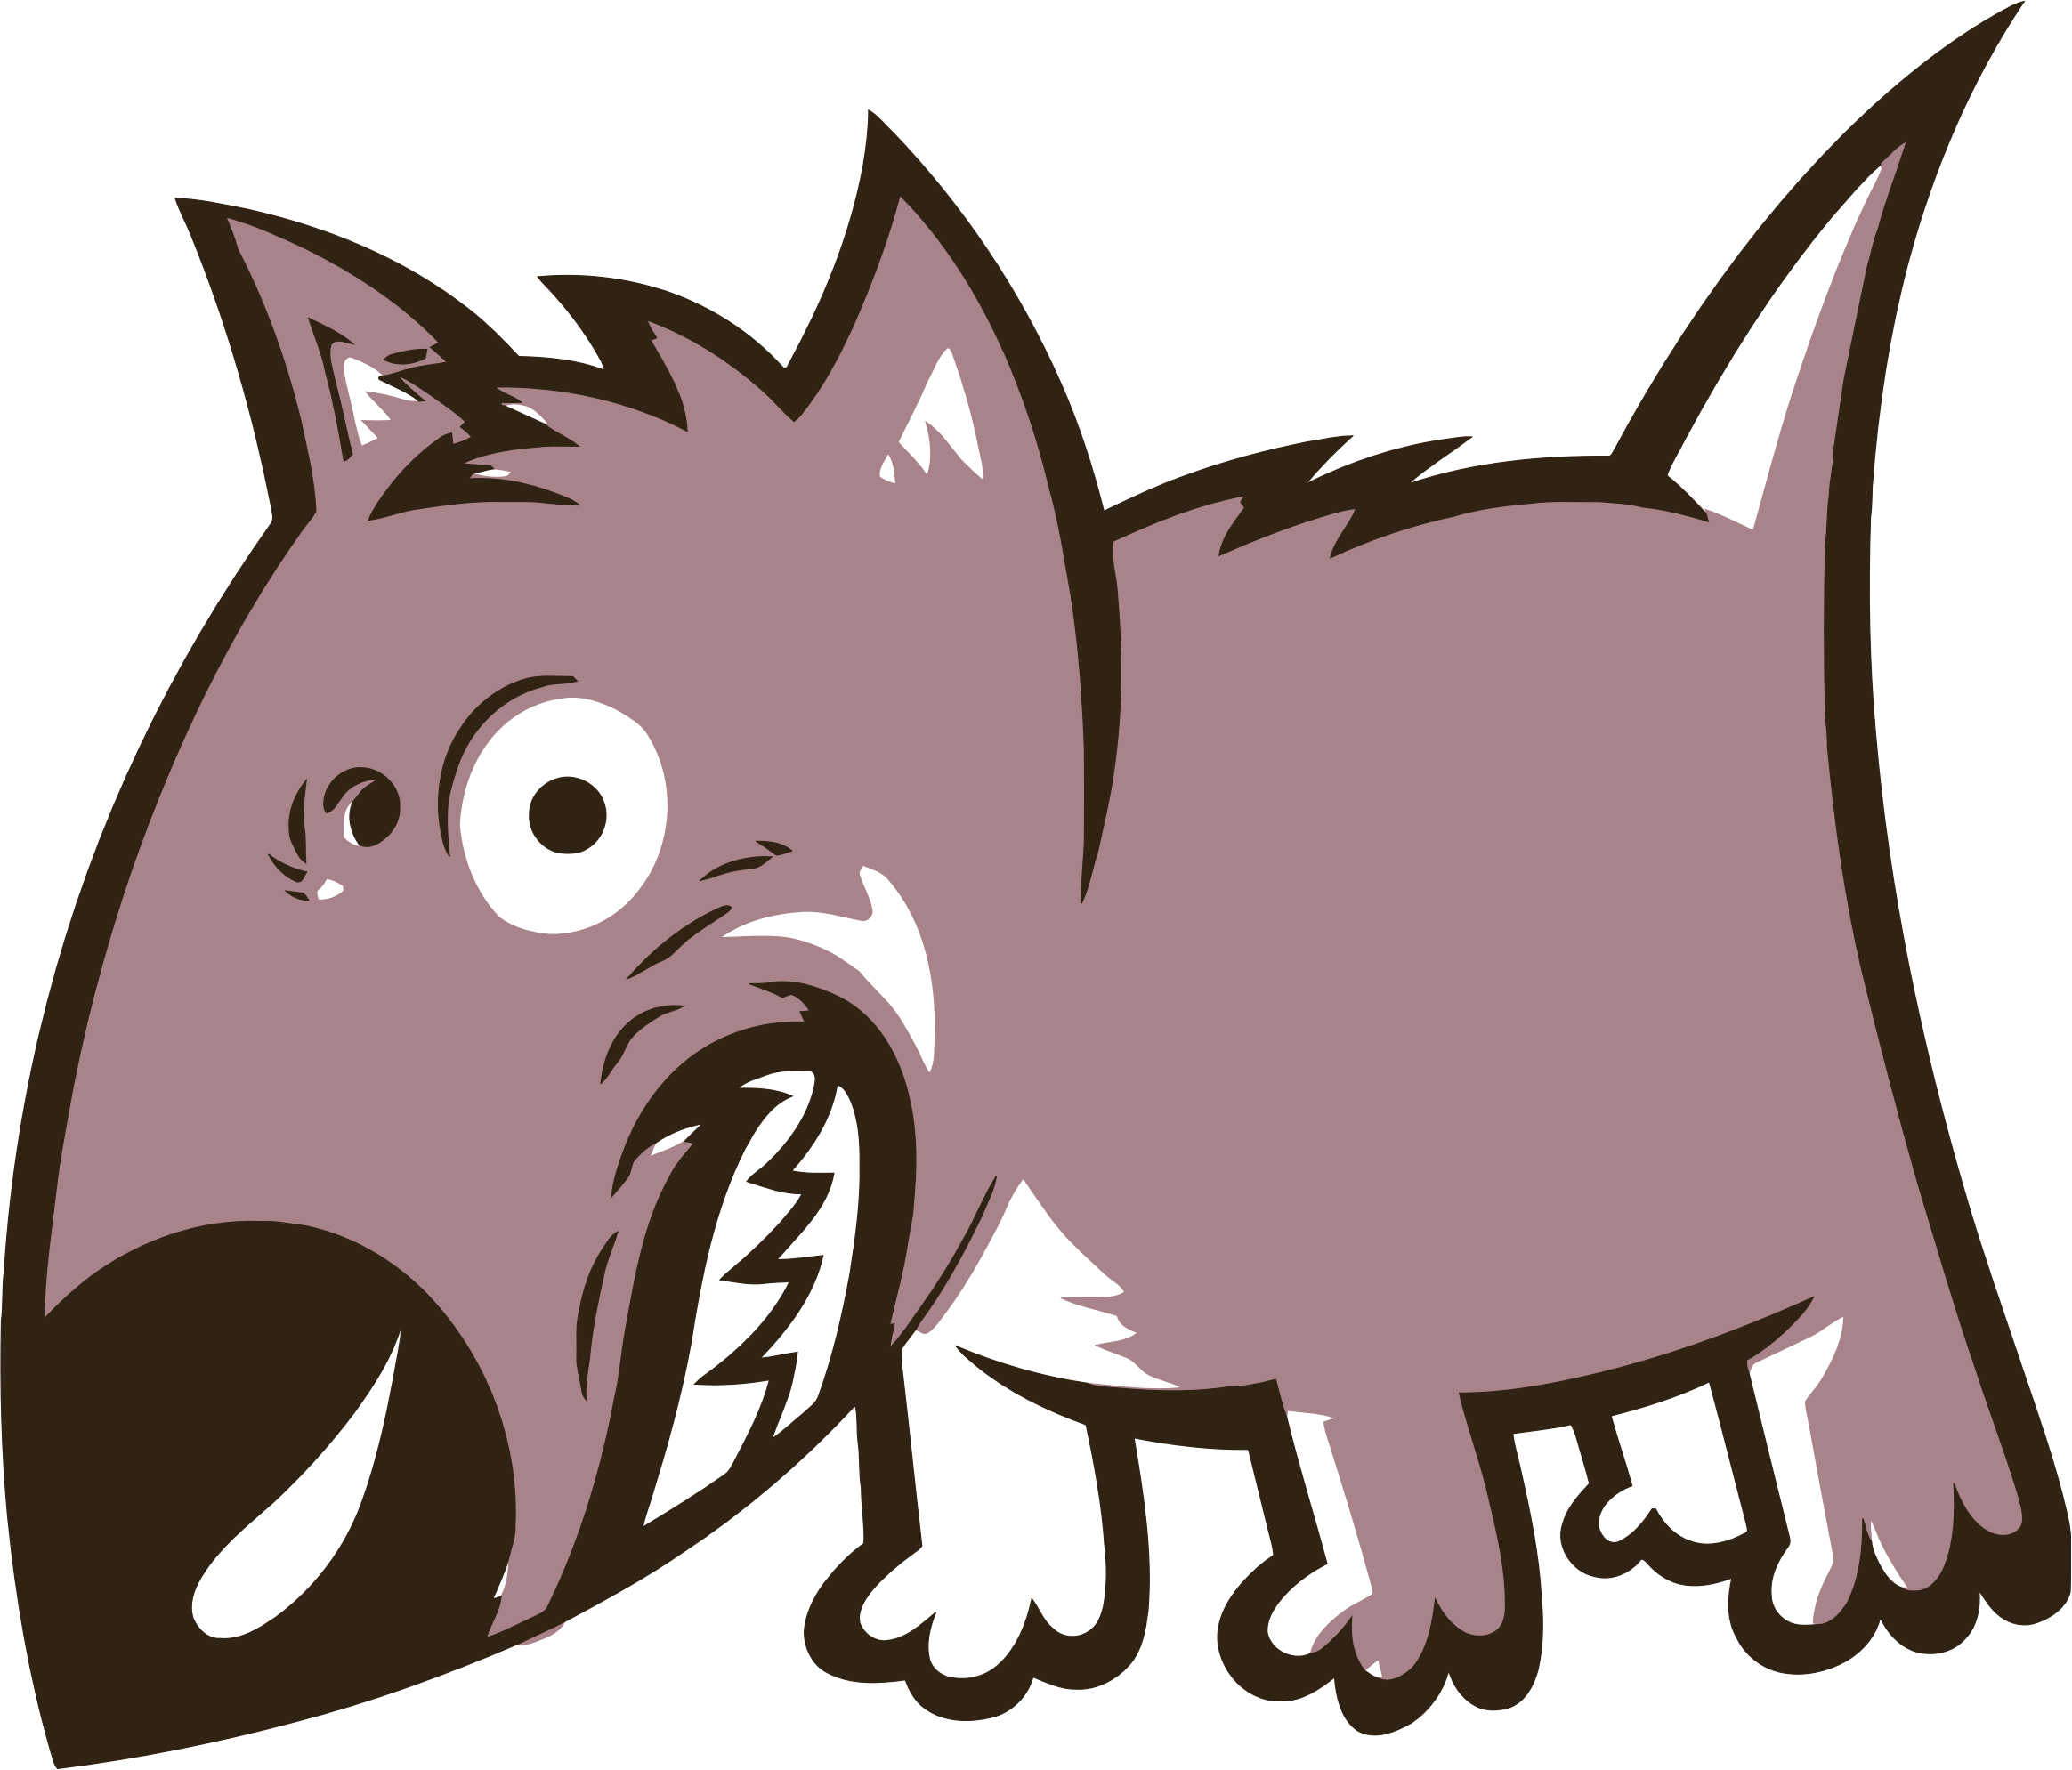 Angry cartoon png. Growling dog icons free